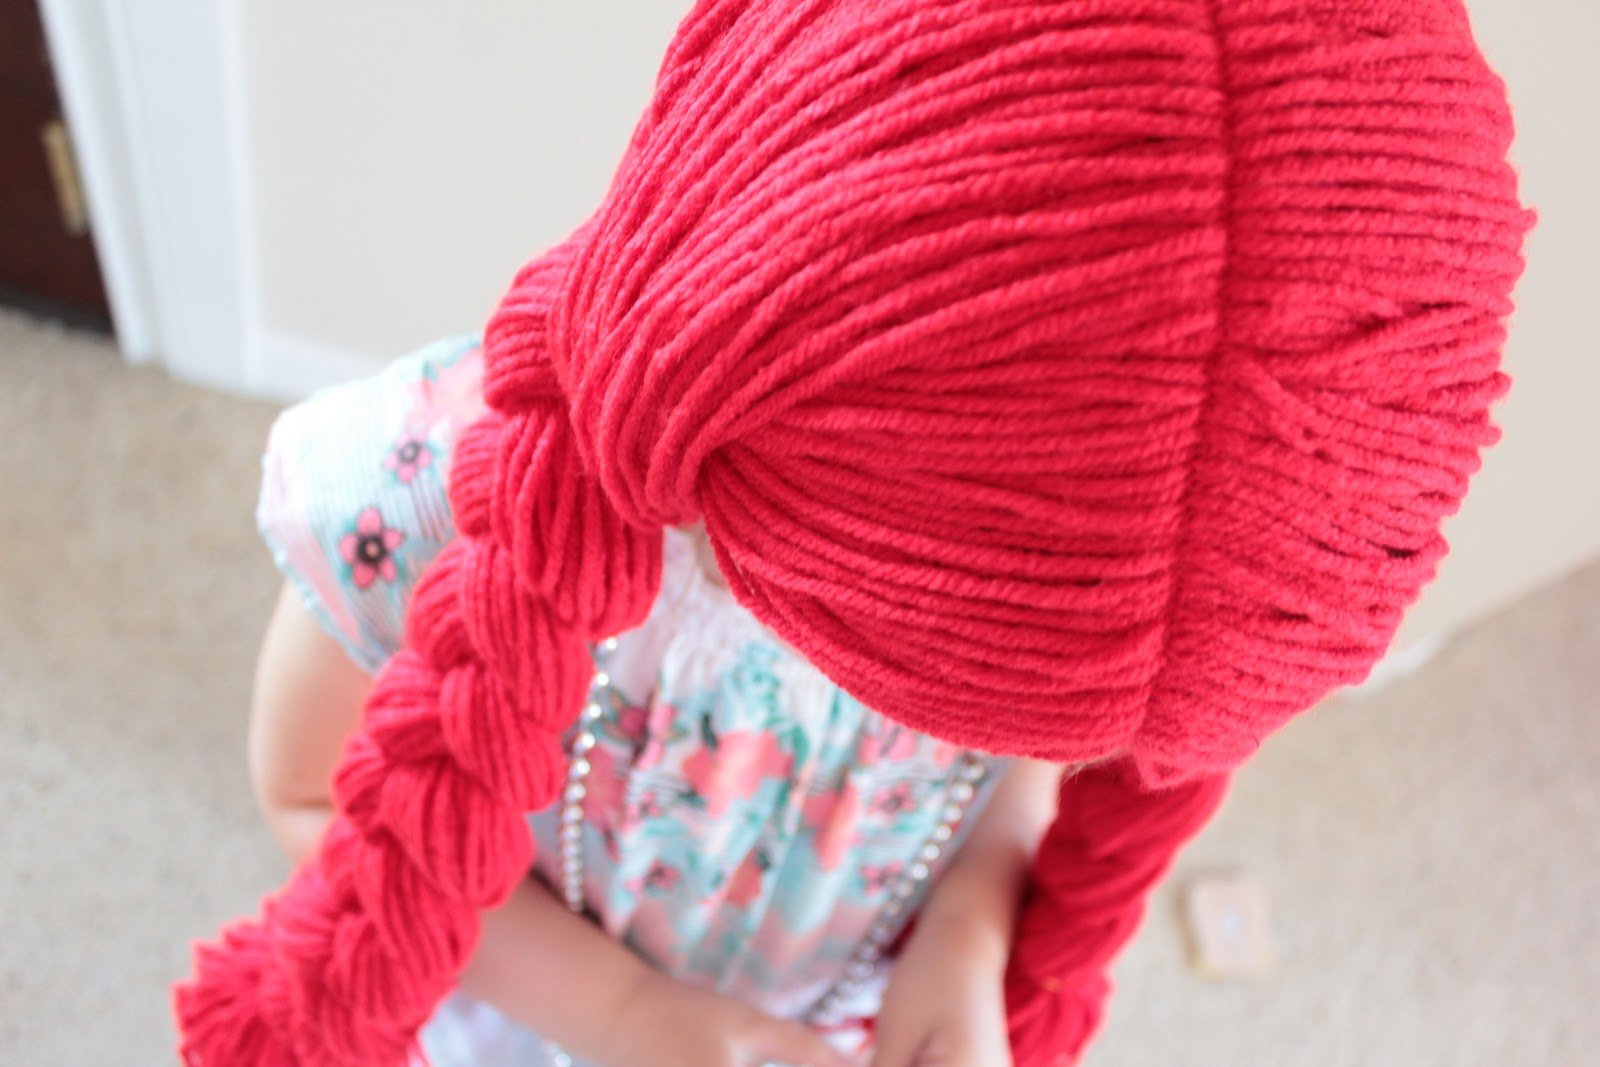 Easy Peasy Lemon Squeezy Yarn Wig Tutorial